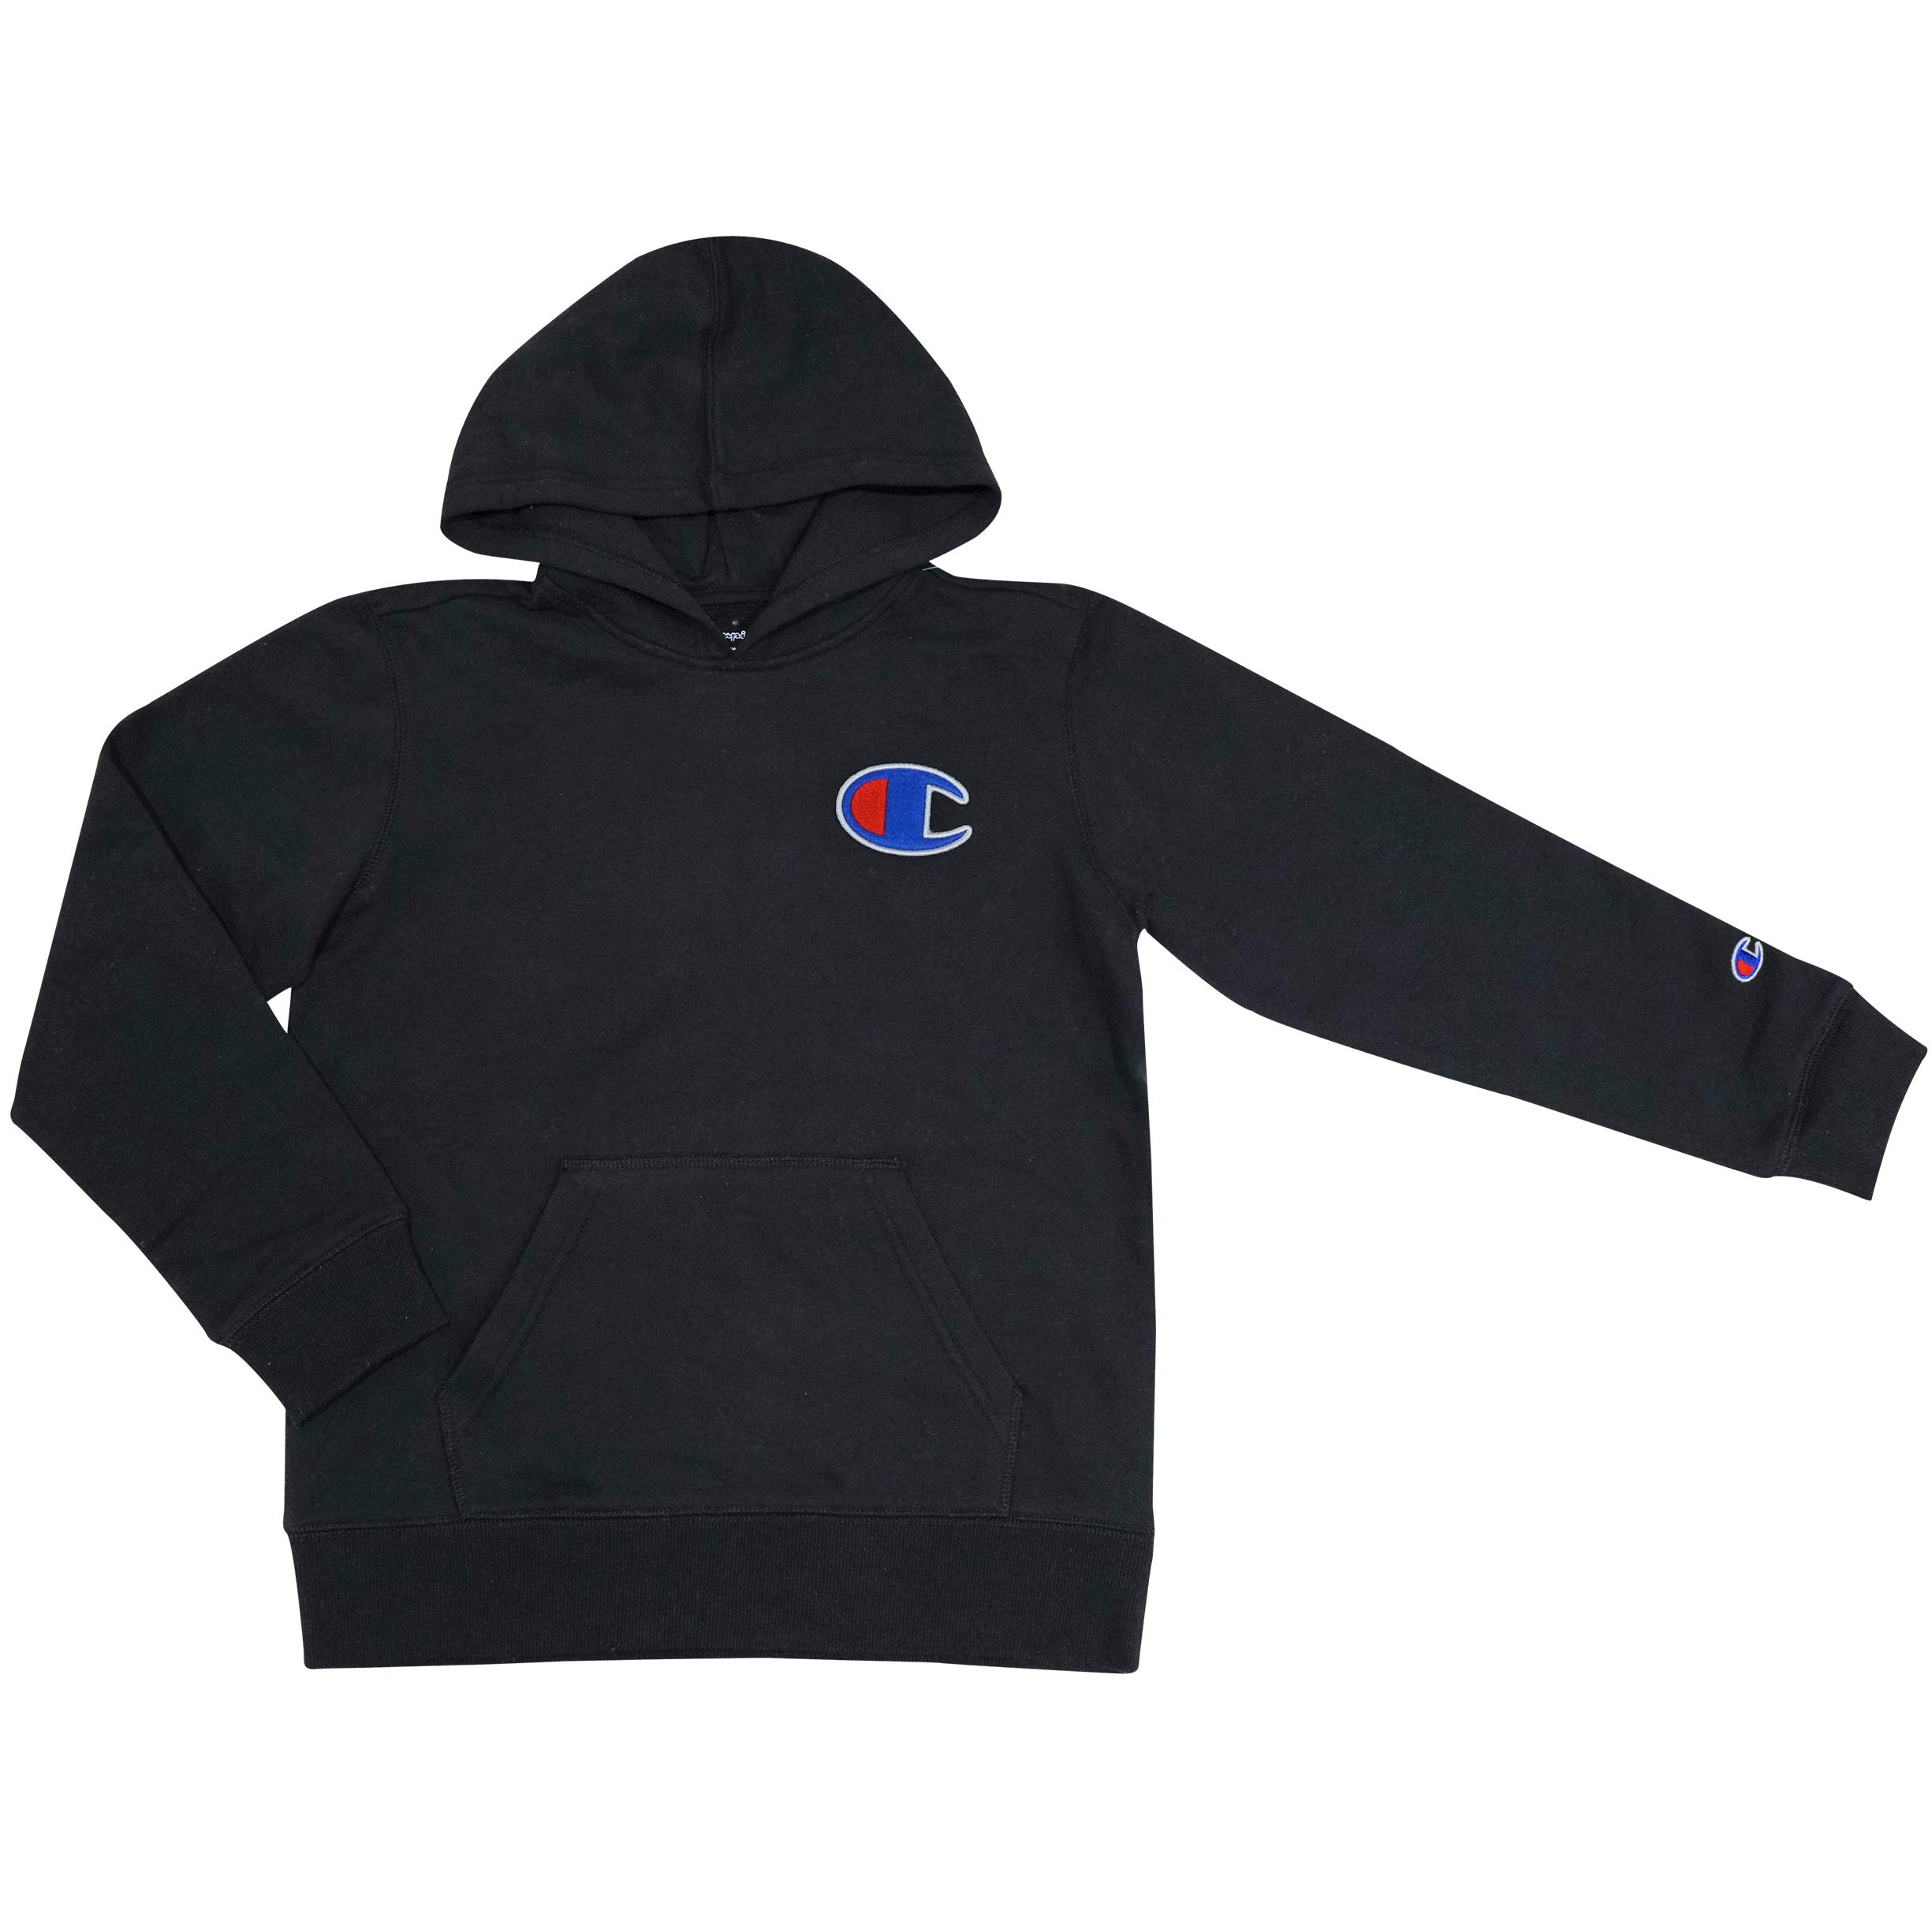 Champion Youth Heritage Fleece Sweatshirt Big and Little Boys